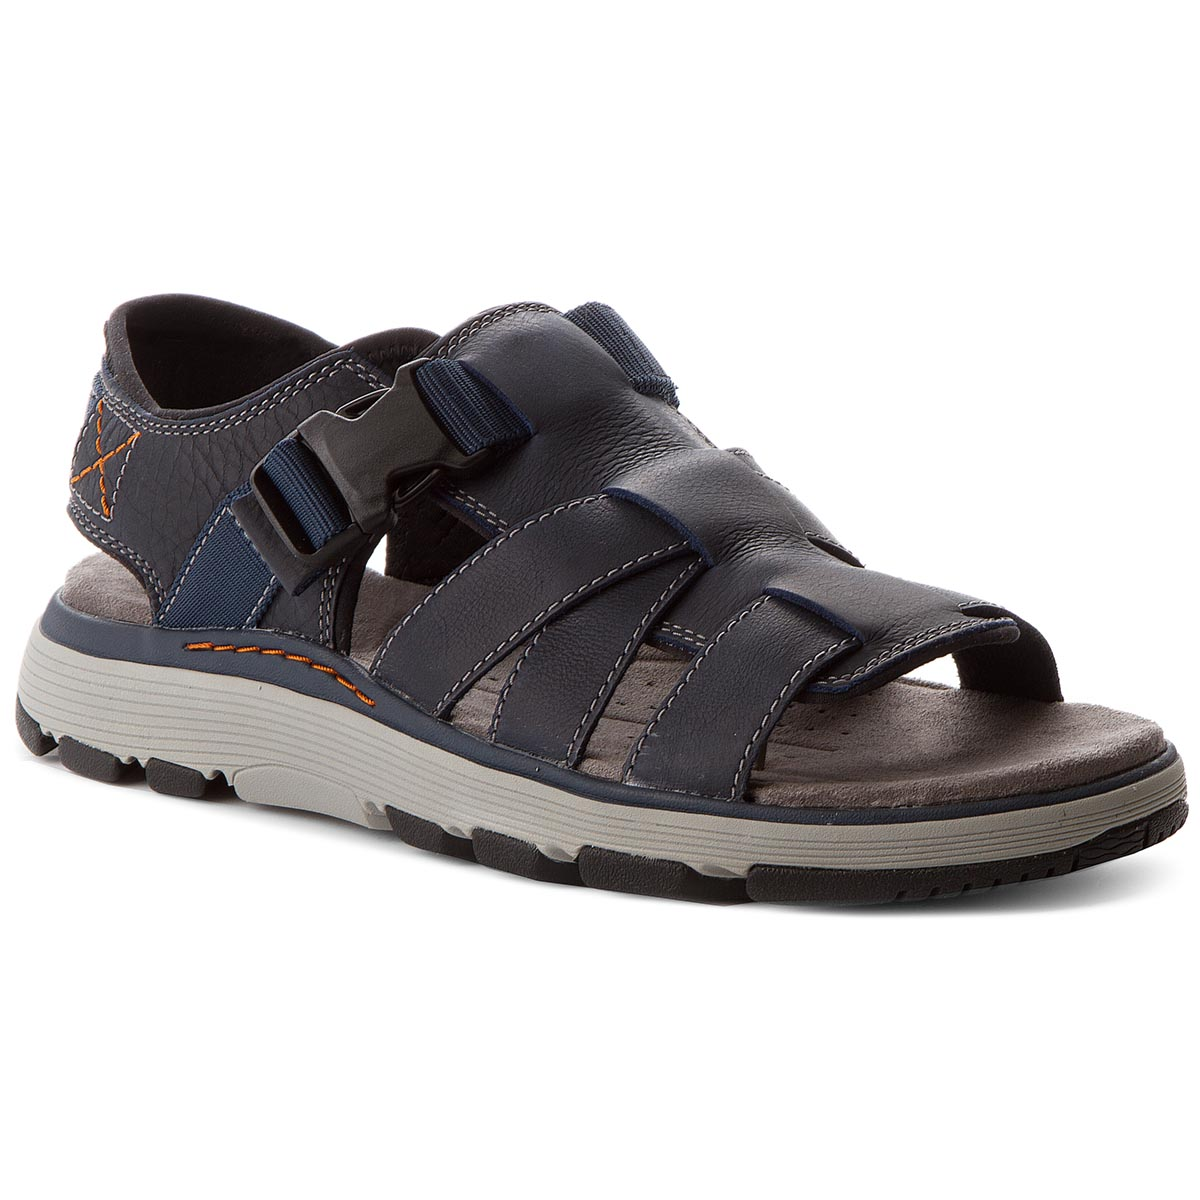 Sandale CLARKS - Un Trek Cove 261318617 Dark Navy